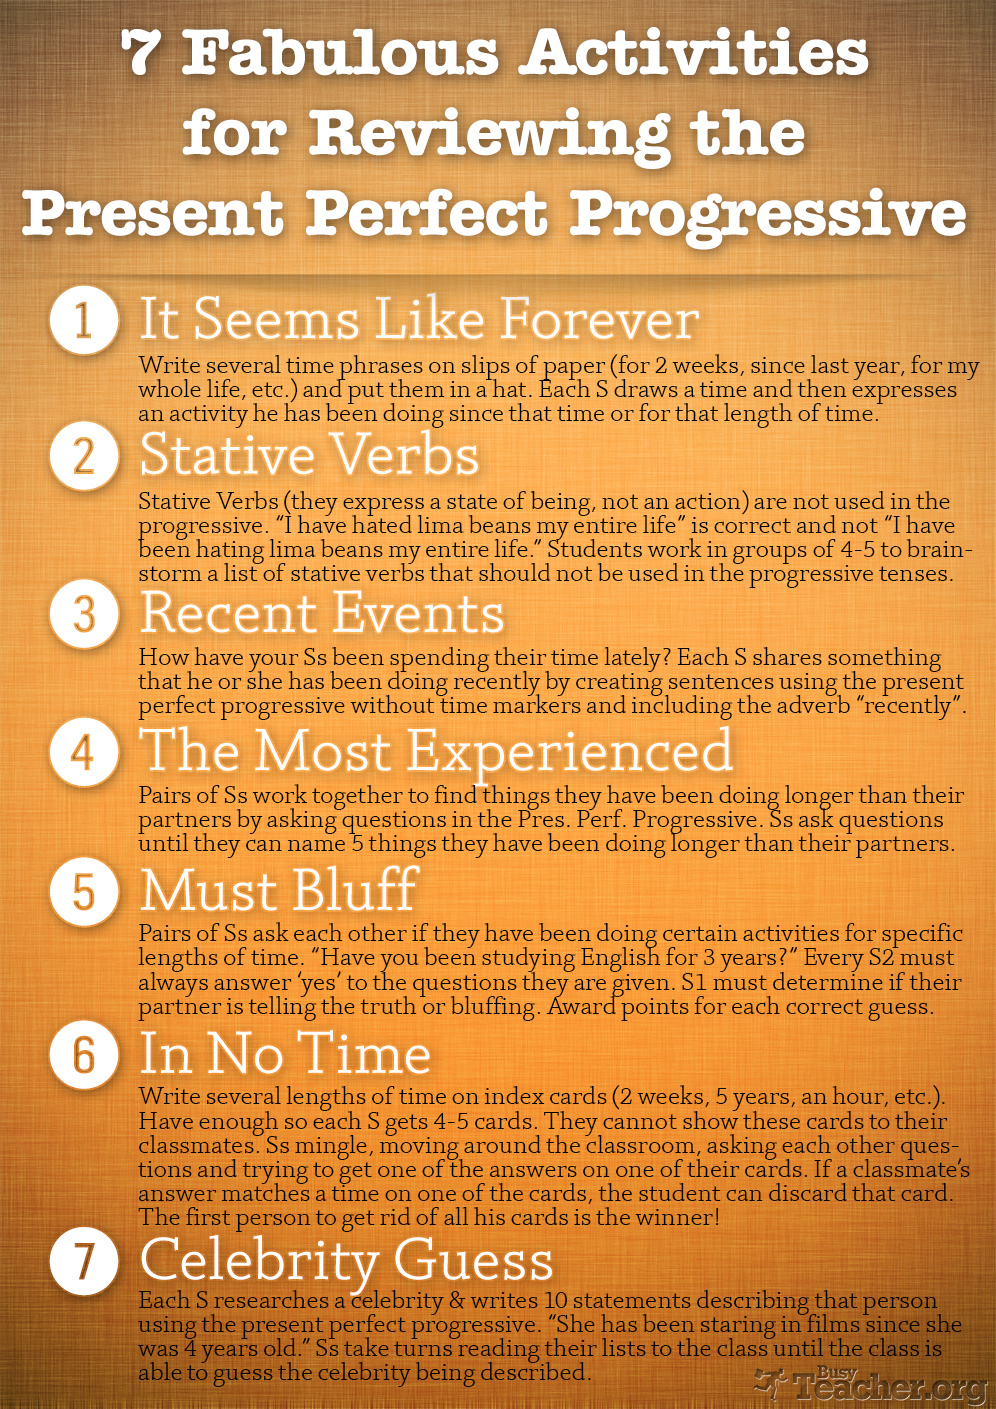 7 Fabulous Activities to Review the Present Perfect Progressive: Poster